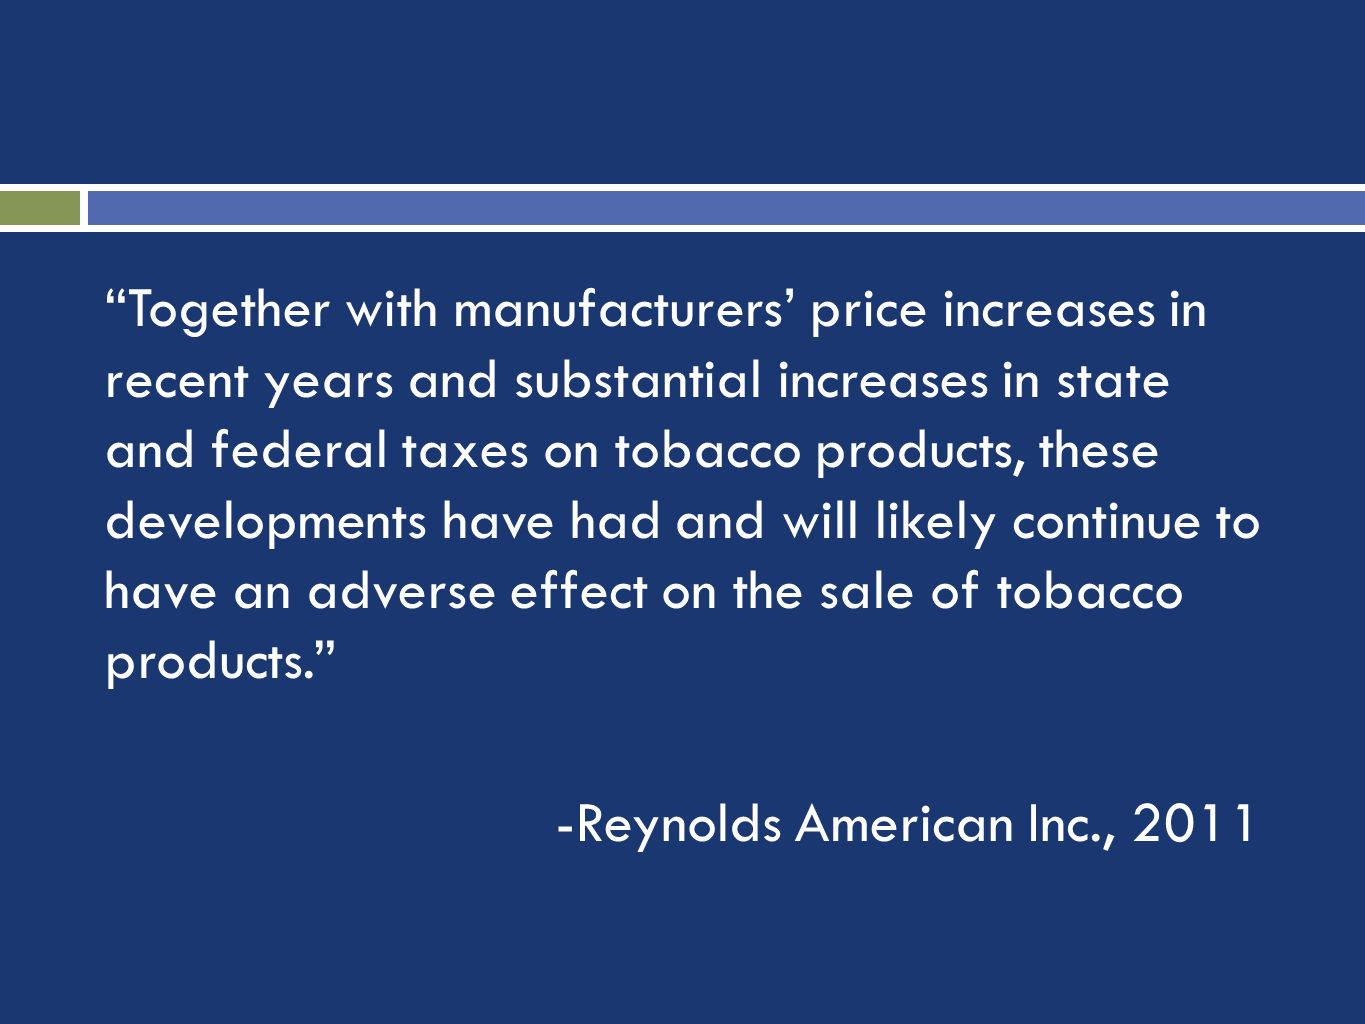 Together with manufacturers price increases in recent years and substantial increases in state and federal taxes on tobacco products, these developments have had and will likely continue to have an adverse effect on the sale of tobacco products.